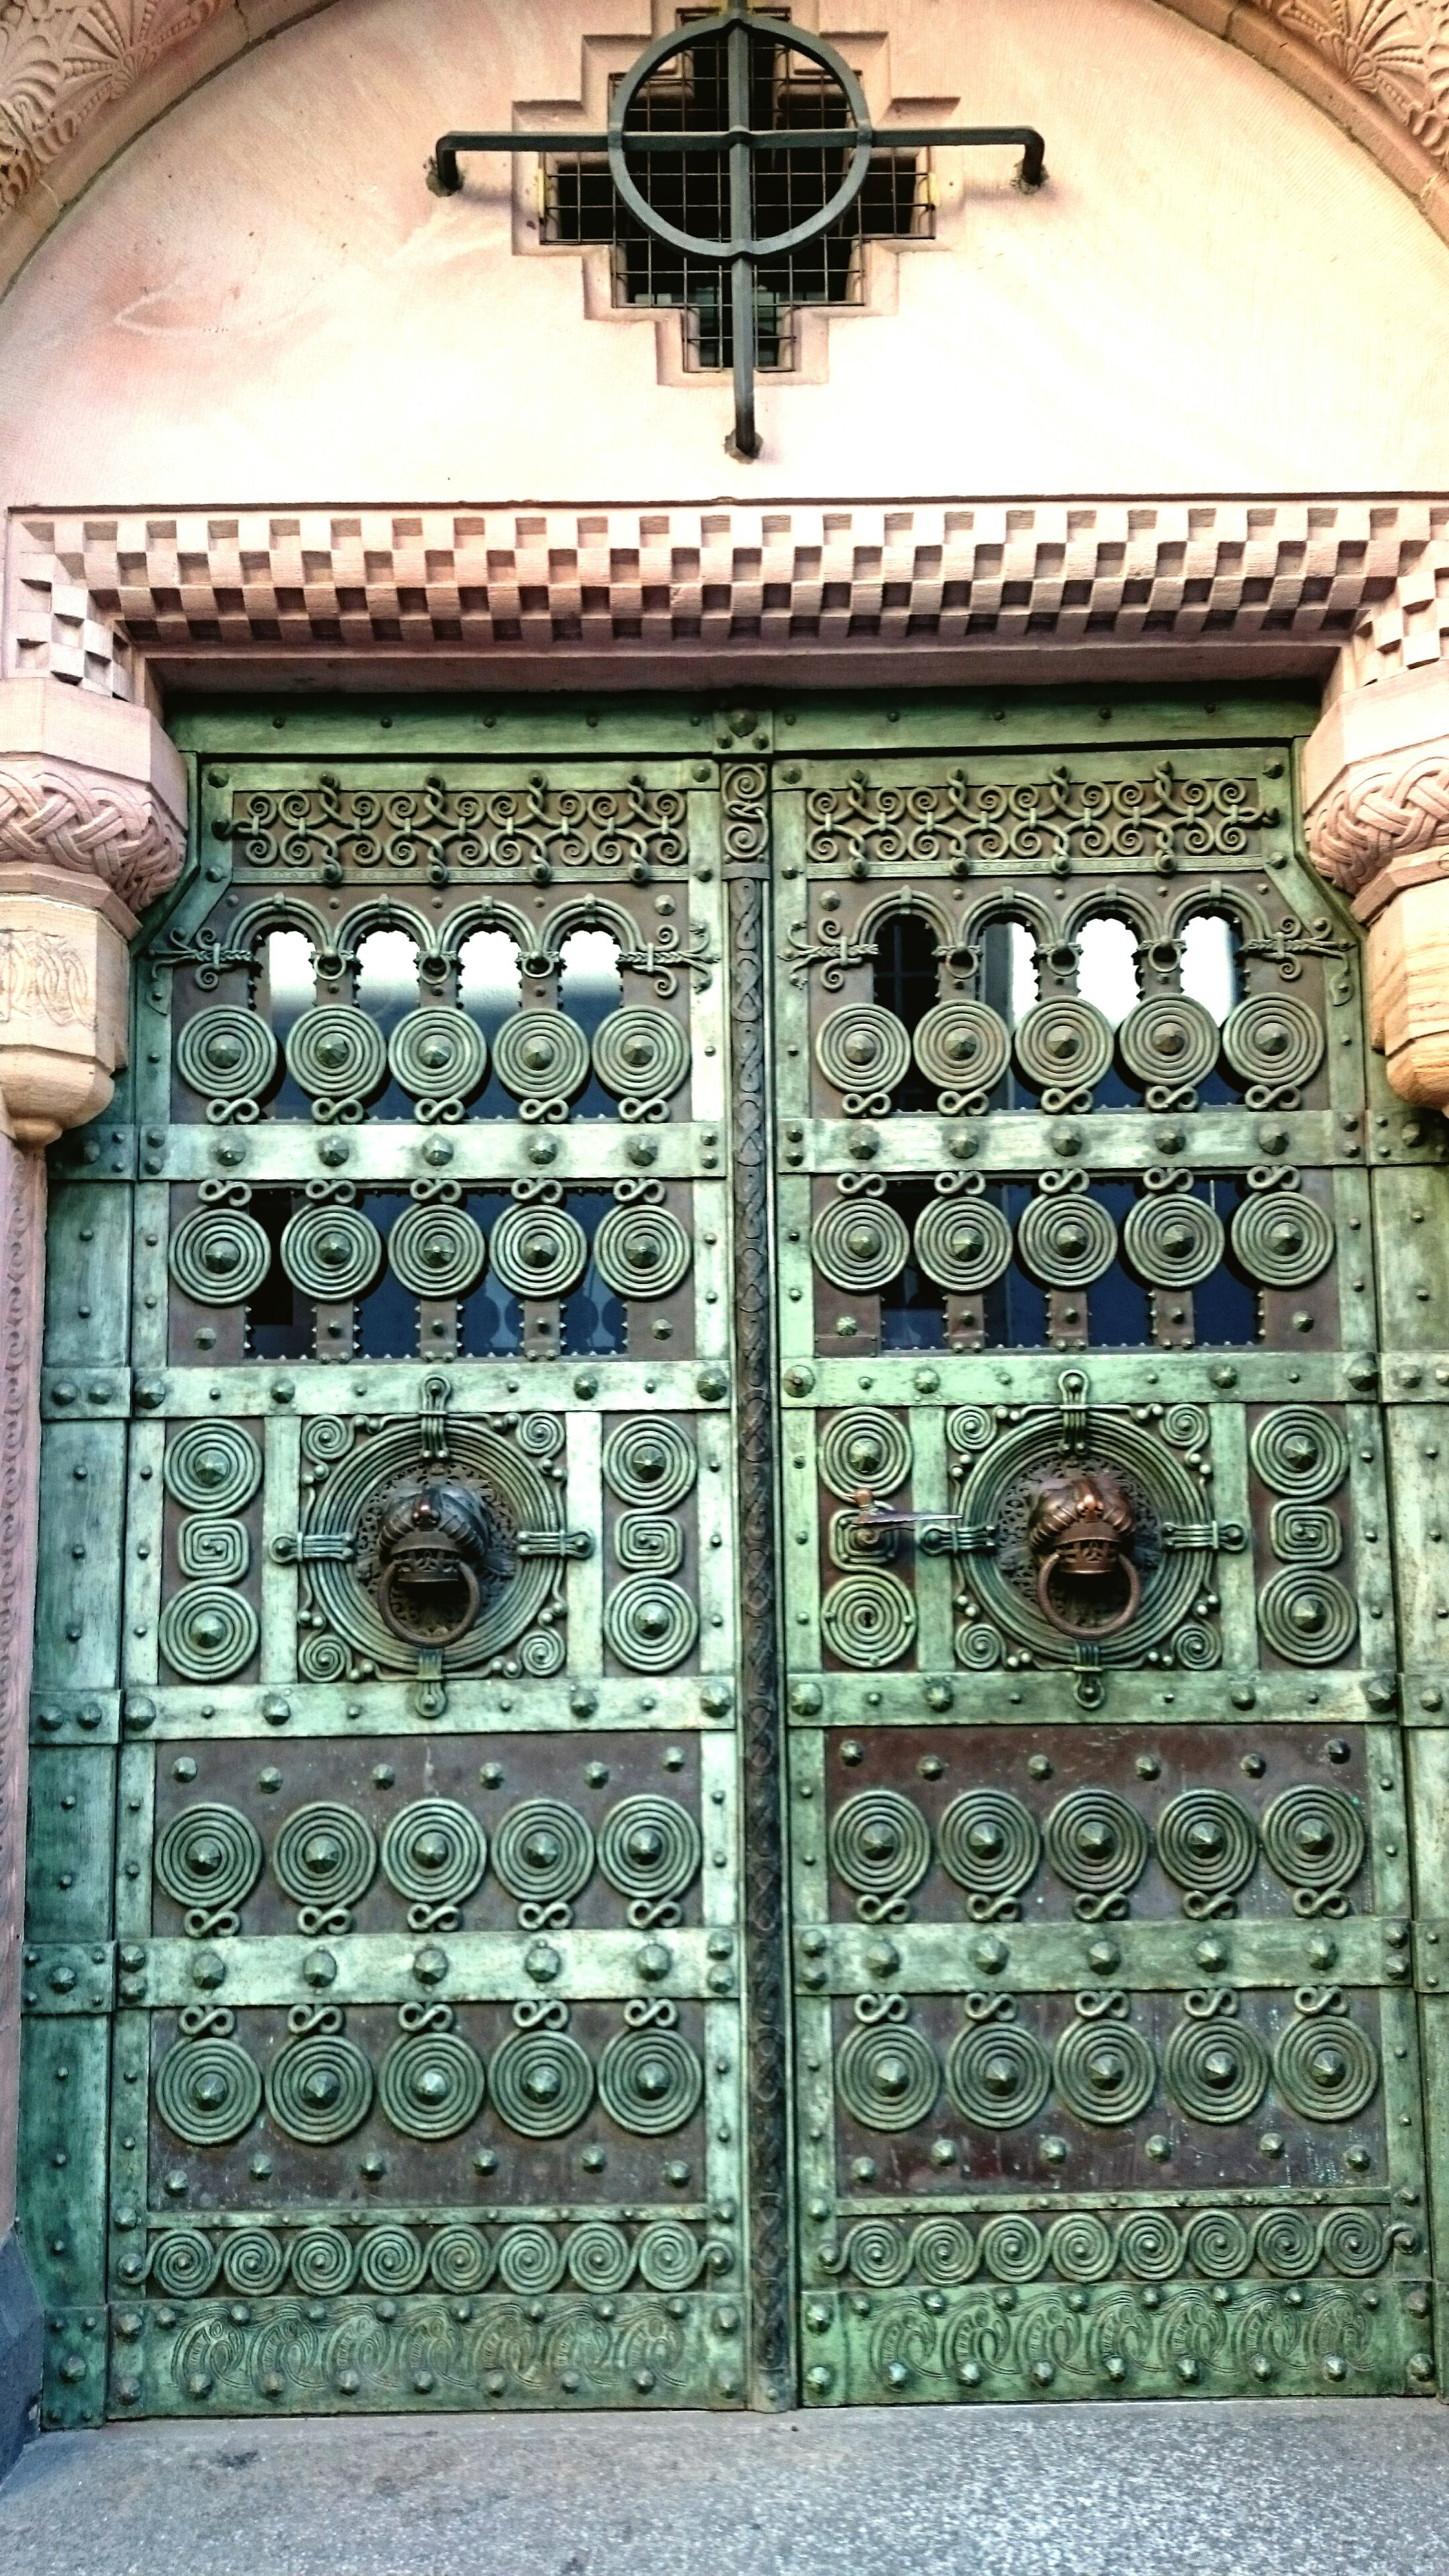 old, indoors, text, religion, old-fashioned, metal, wood - material, architecture, built structure, antique, communication, close-up, hanging, wall - building feature, door, history, the past, ornate, spirituality, number